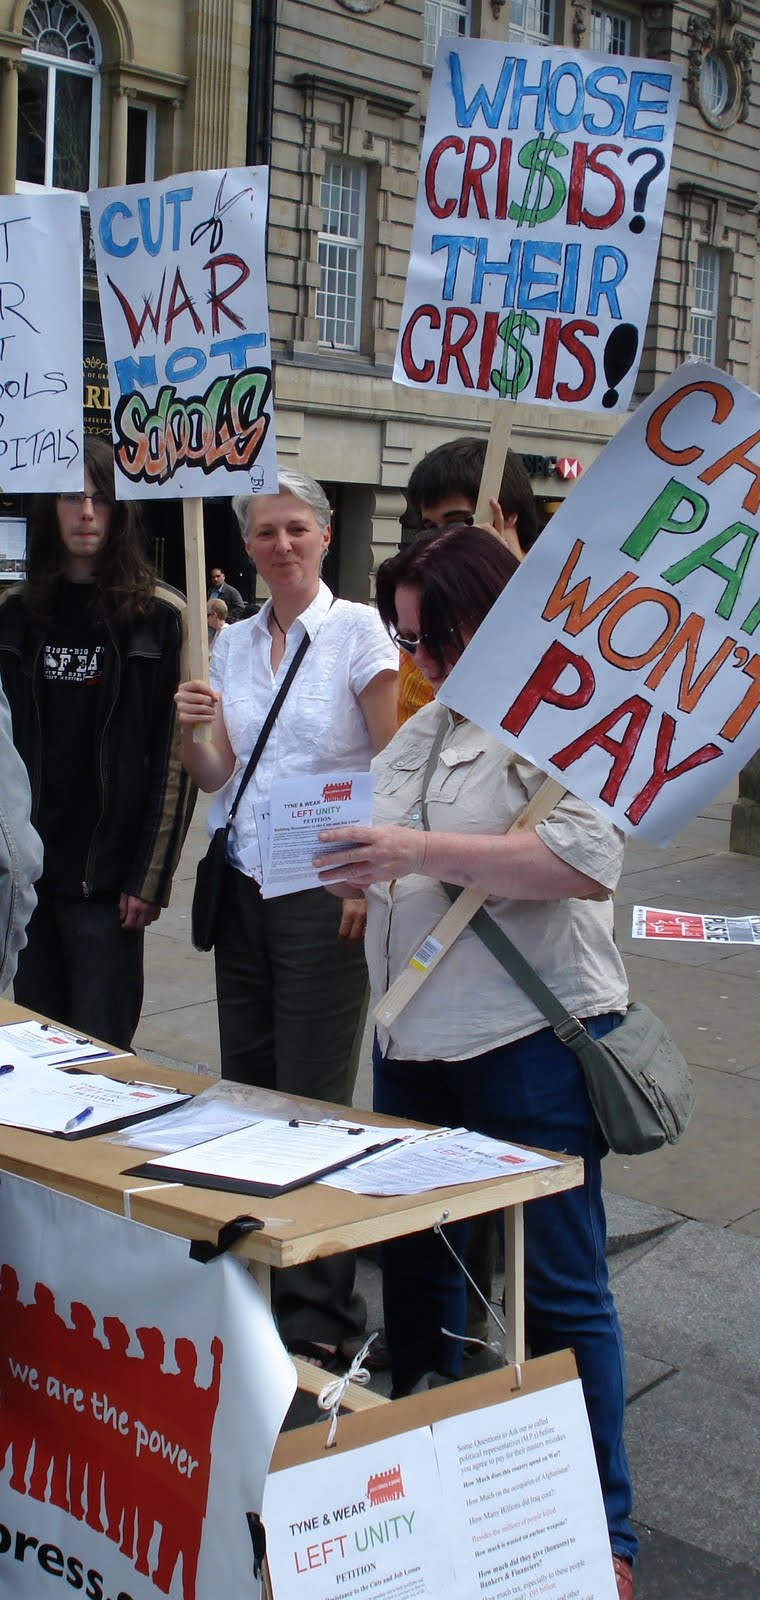 Tyne and Wear Left Unity supporters on an anti-cuts stall in Newcastle